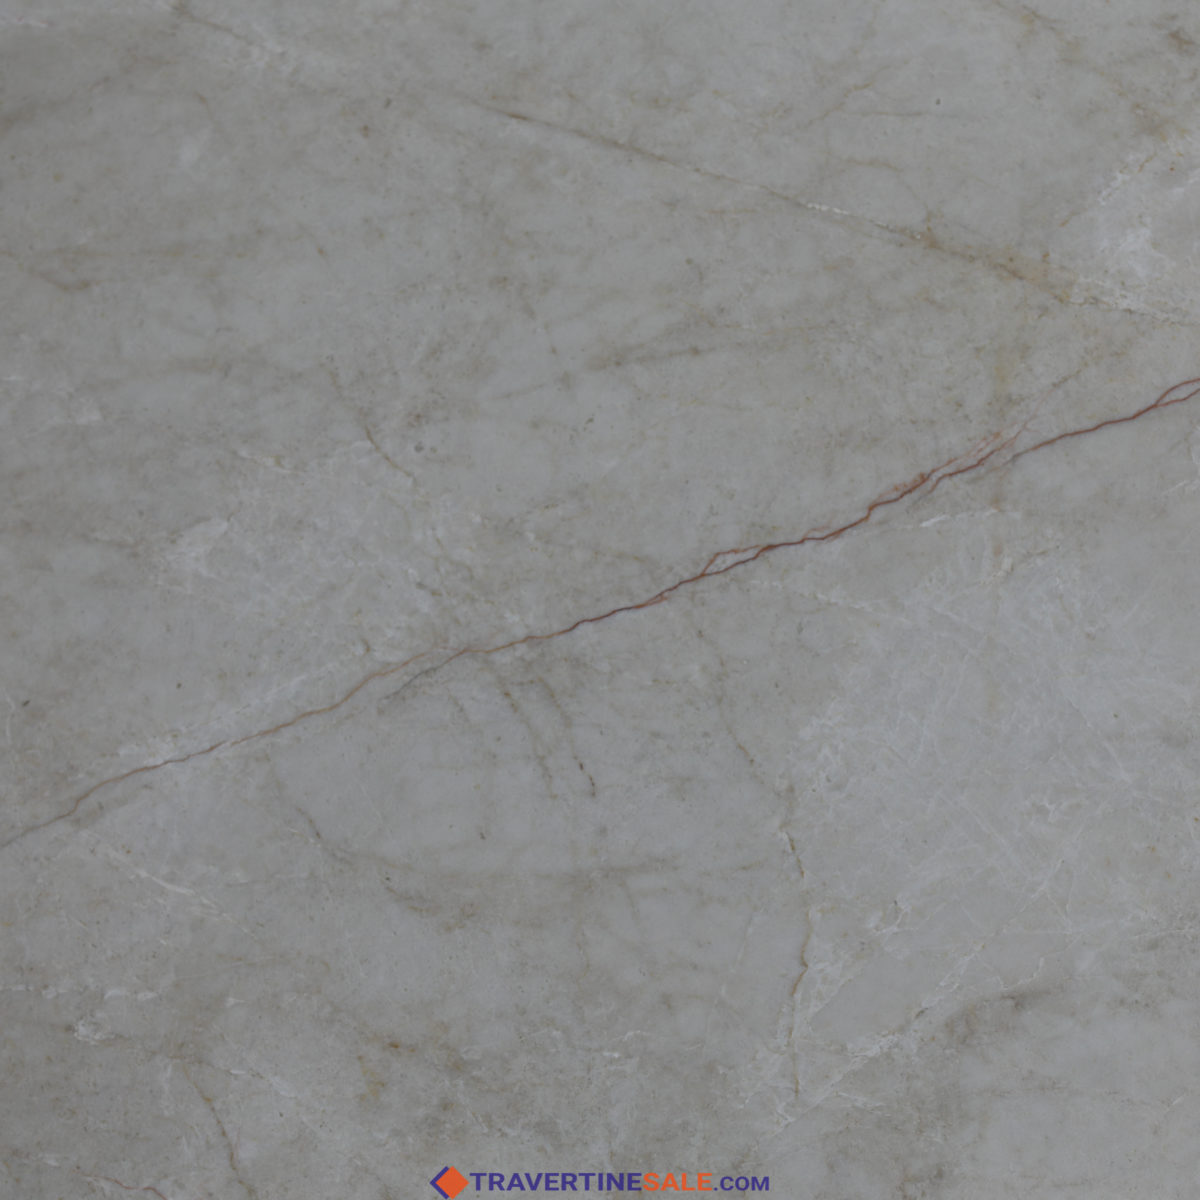 polished vanilla marble 60x60 cut to size tile surface with beige background and red vein